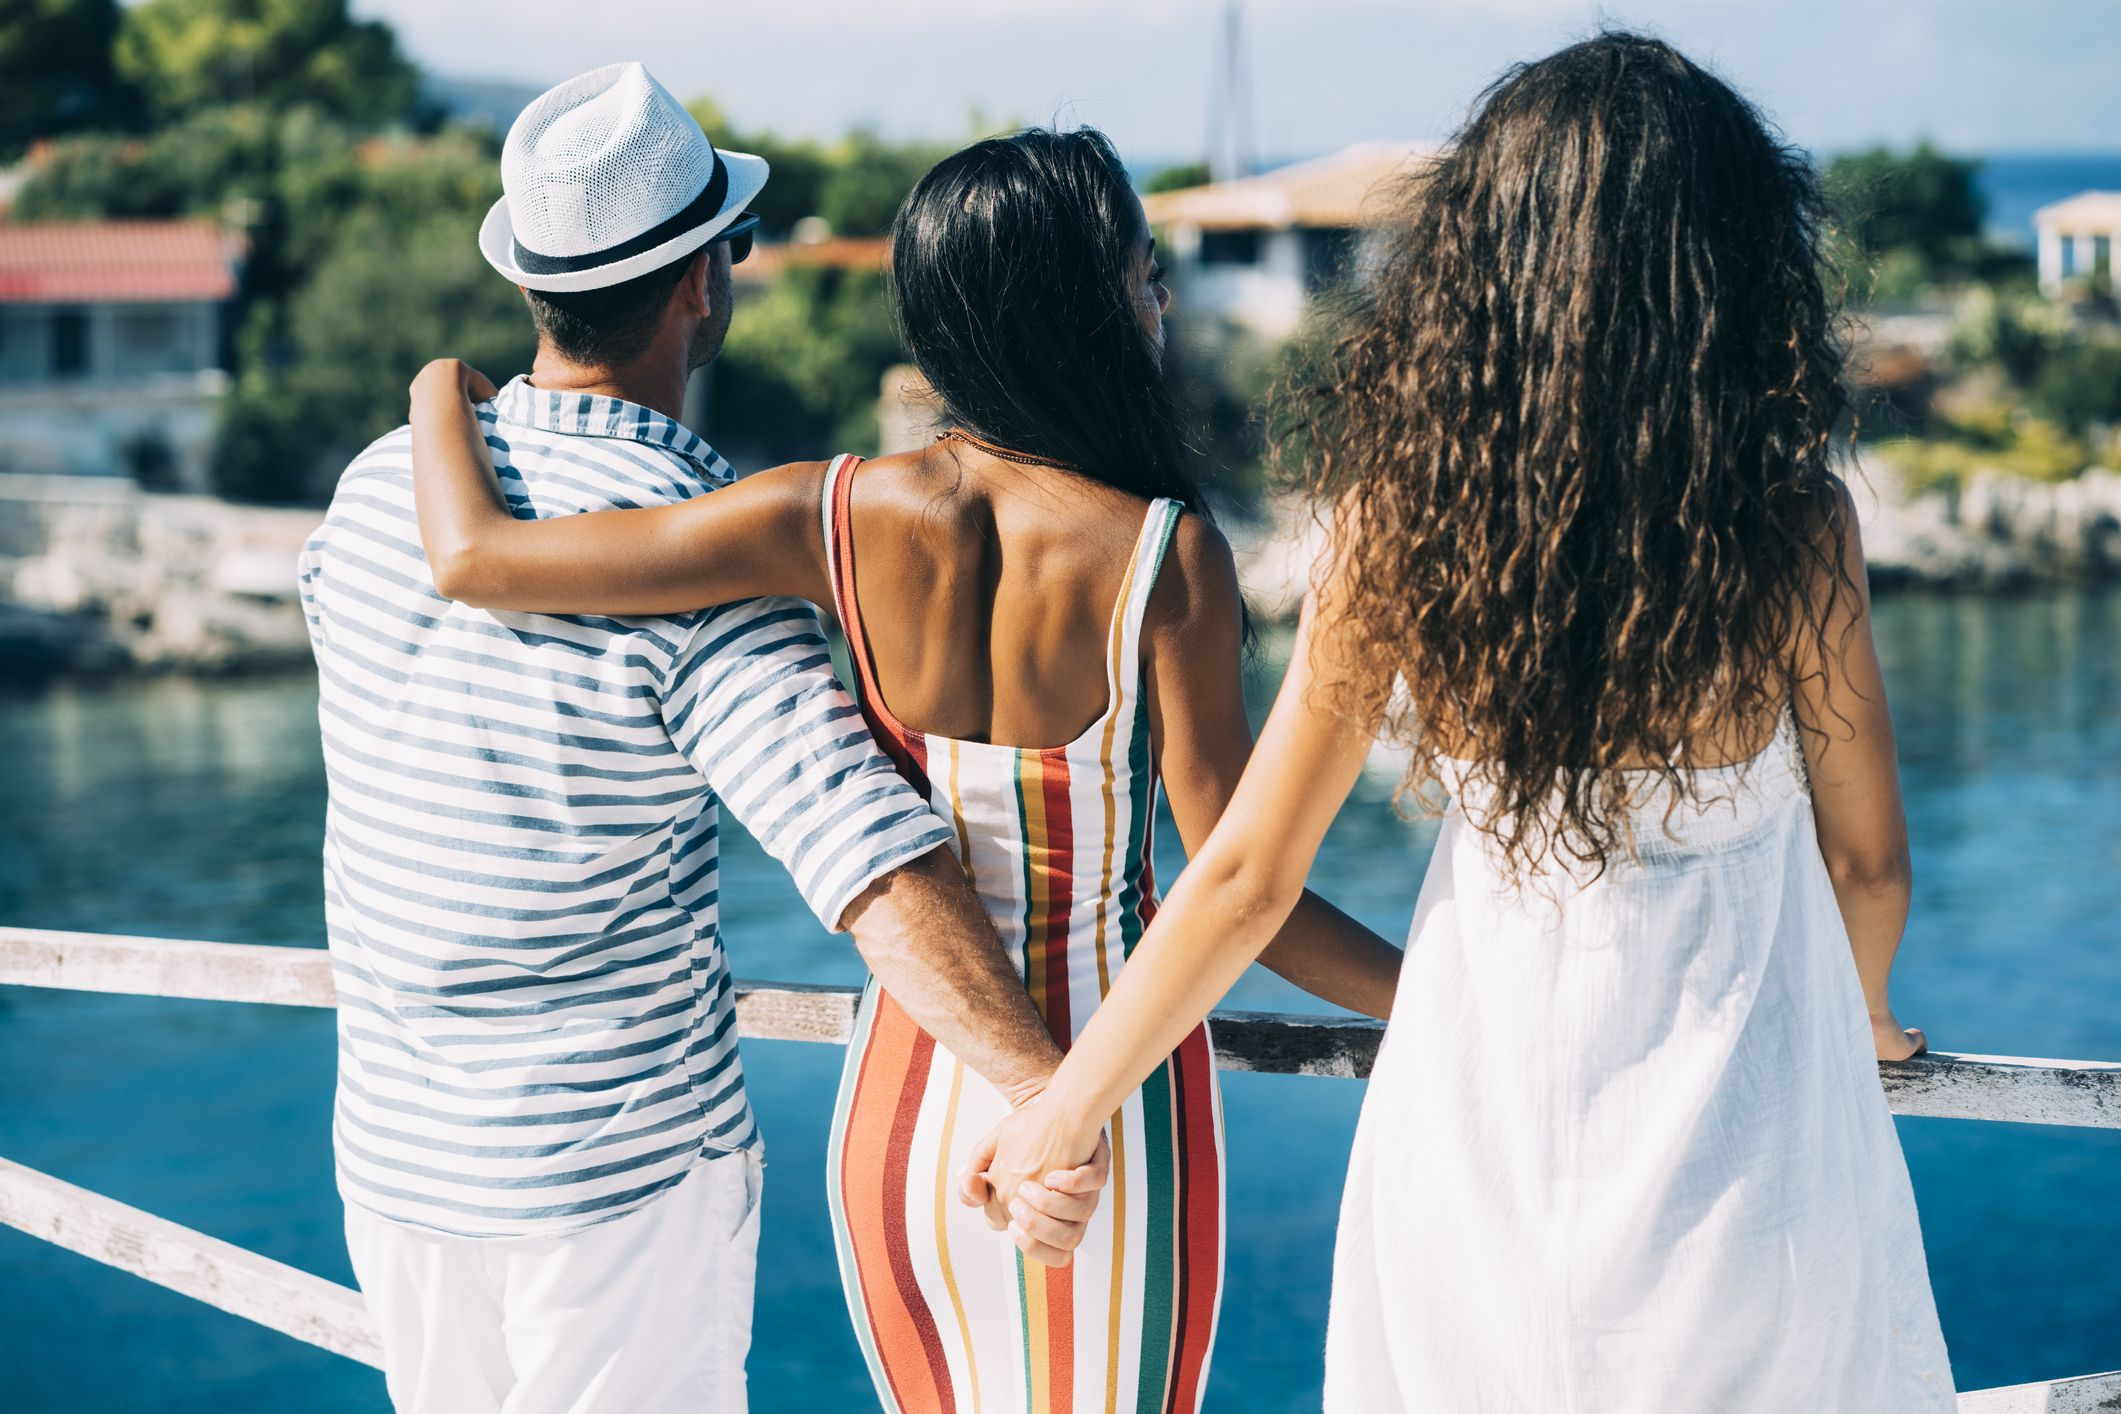 What Is an Open Relationship? - How Open Relationships Work